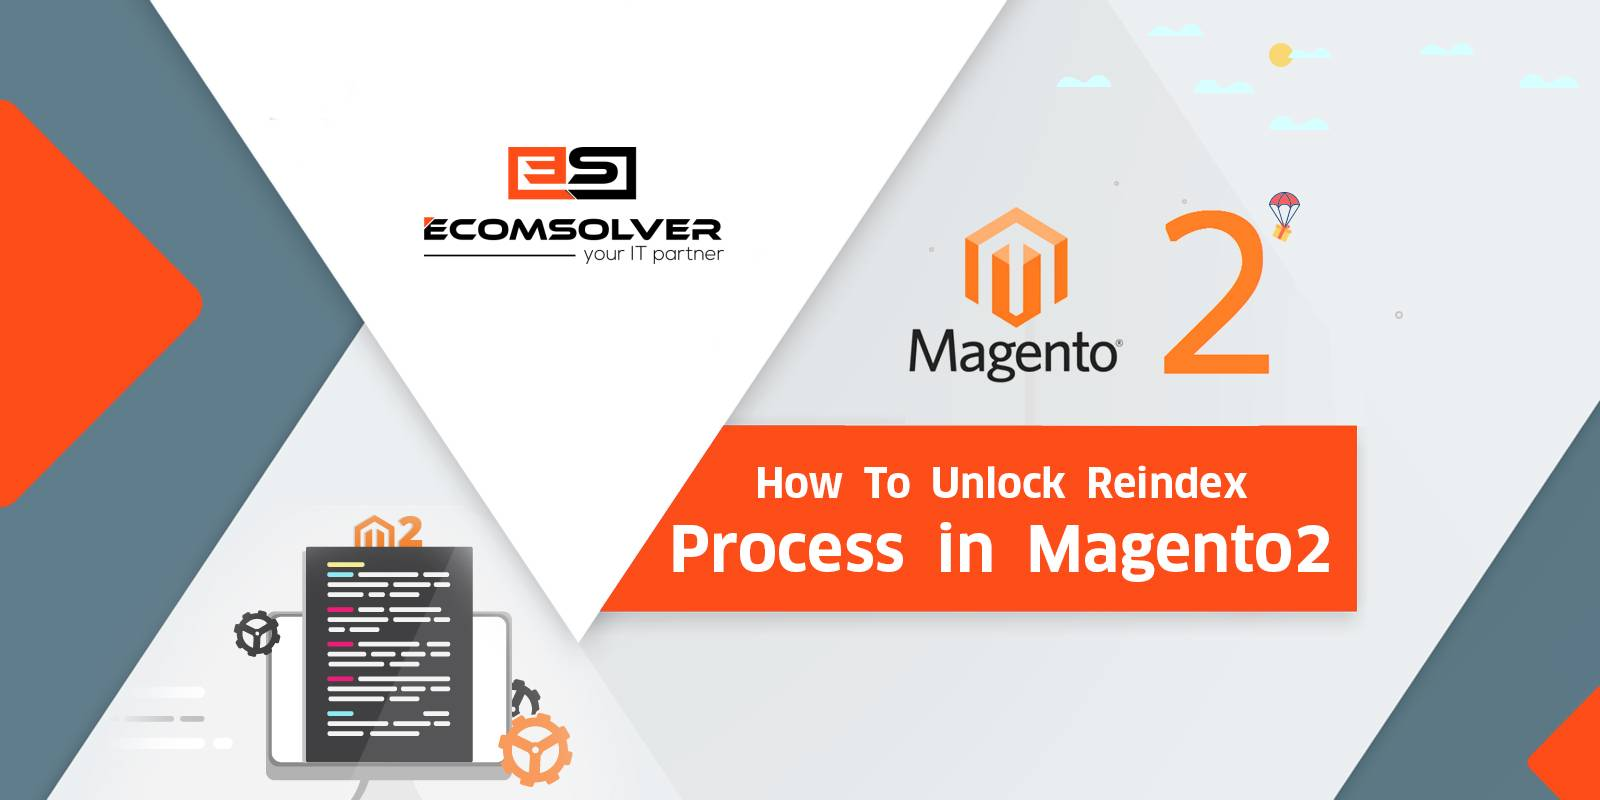 How to Unlock Reindex Process in Magento 2